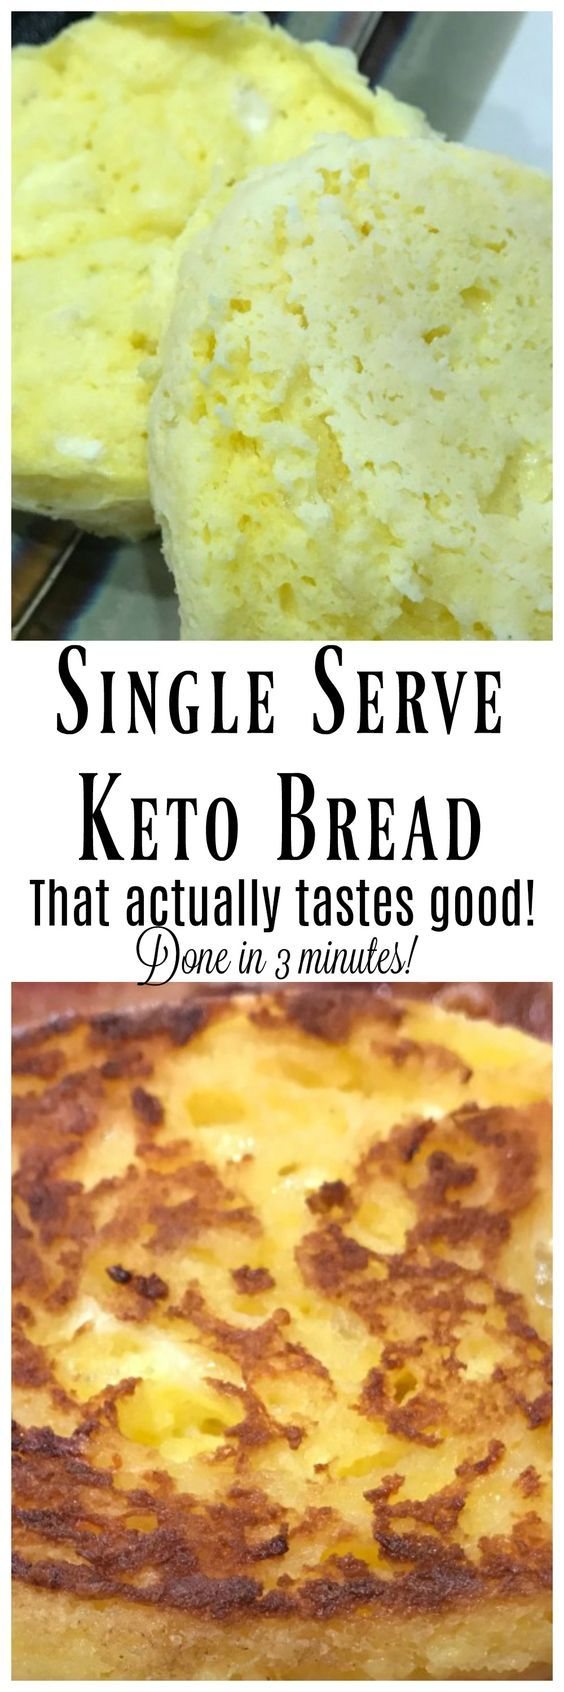 This Single Serving Keto Bread takes under 3 minutes to make and it actually tastes good! Low carb Keto friendly bread that is made with coconut flour and easily cooked in the microwave! Perfect for Keto Breakfast Sandwiches!